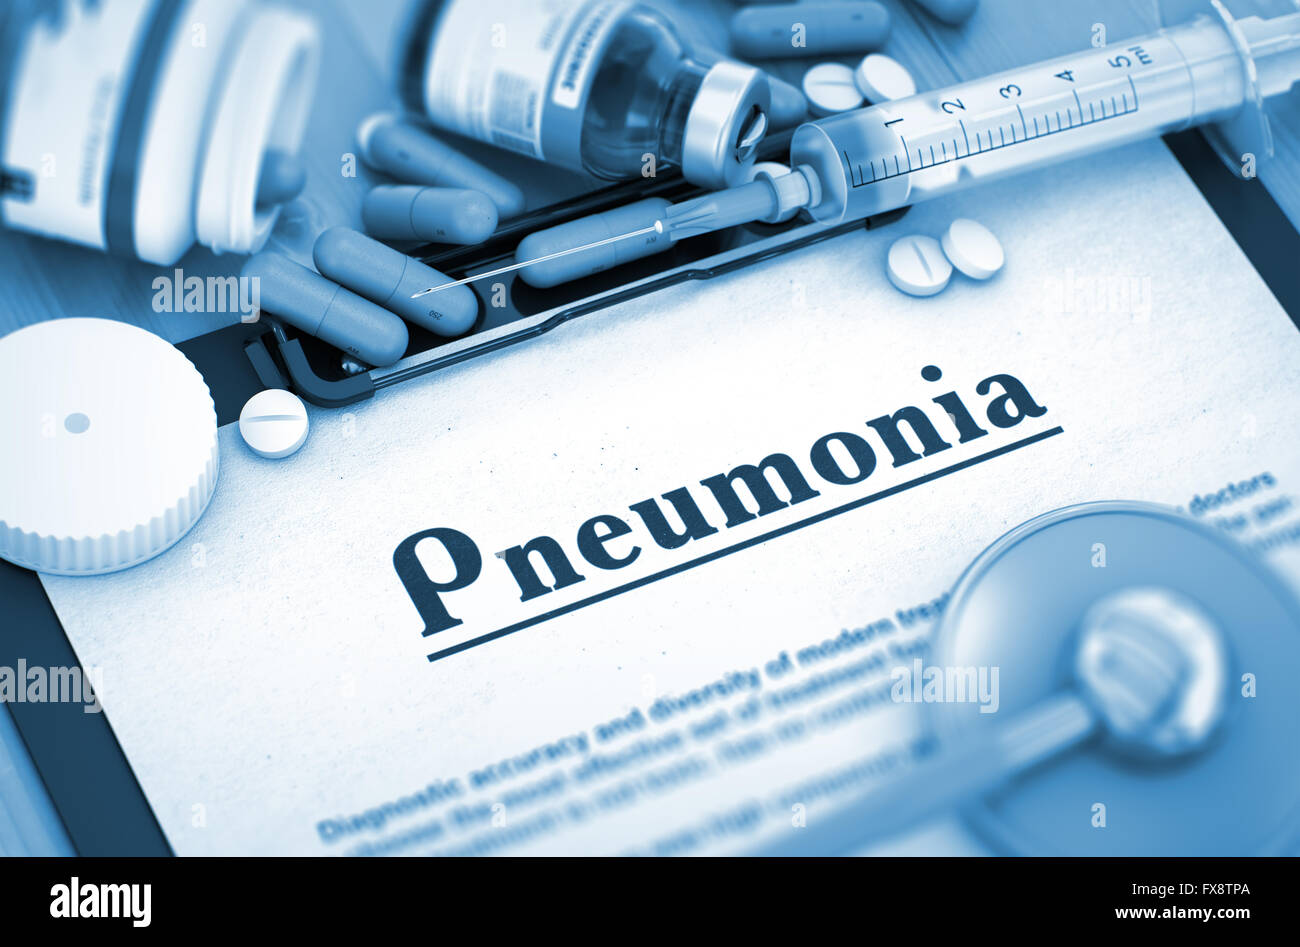 Pneumonia Diagnosis. Medical Concept. 3D Render. - Stock Image